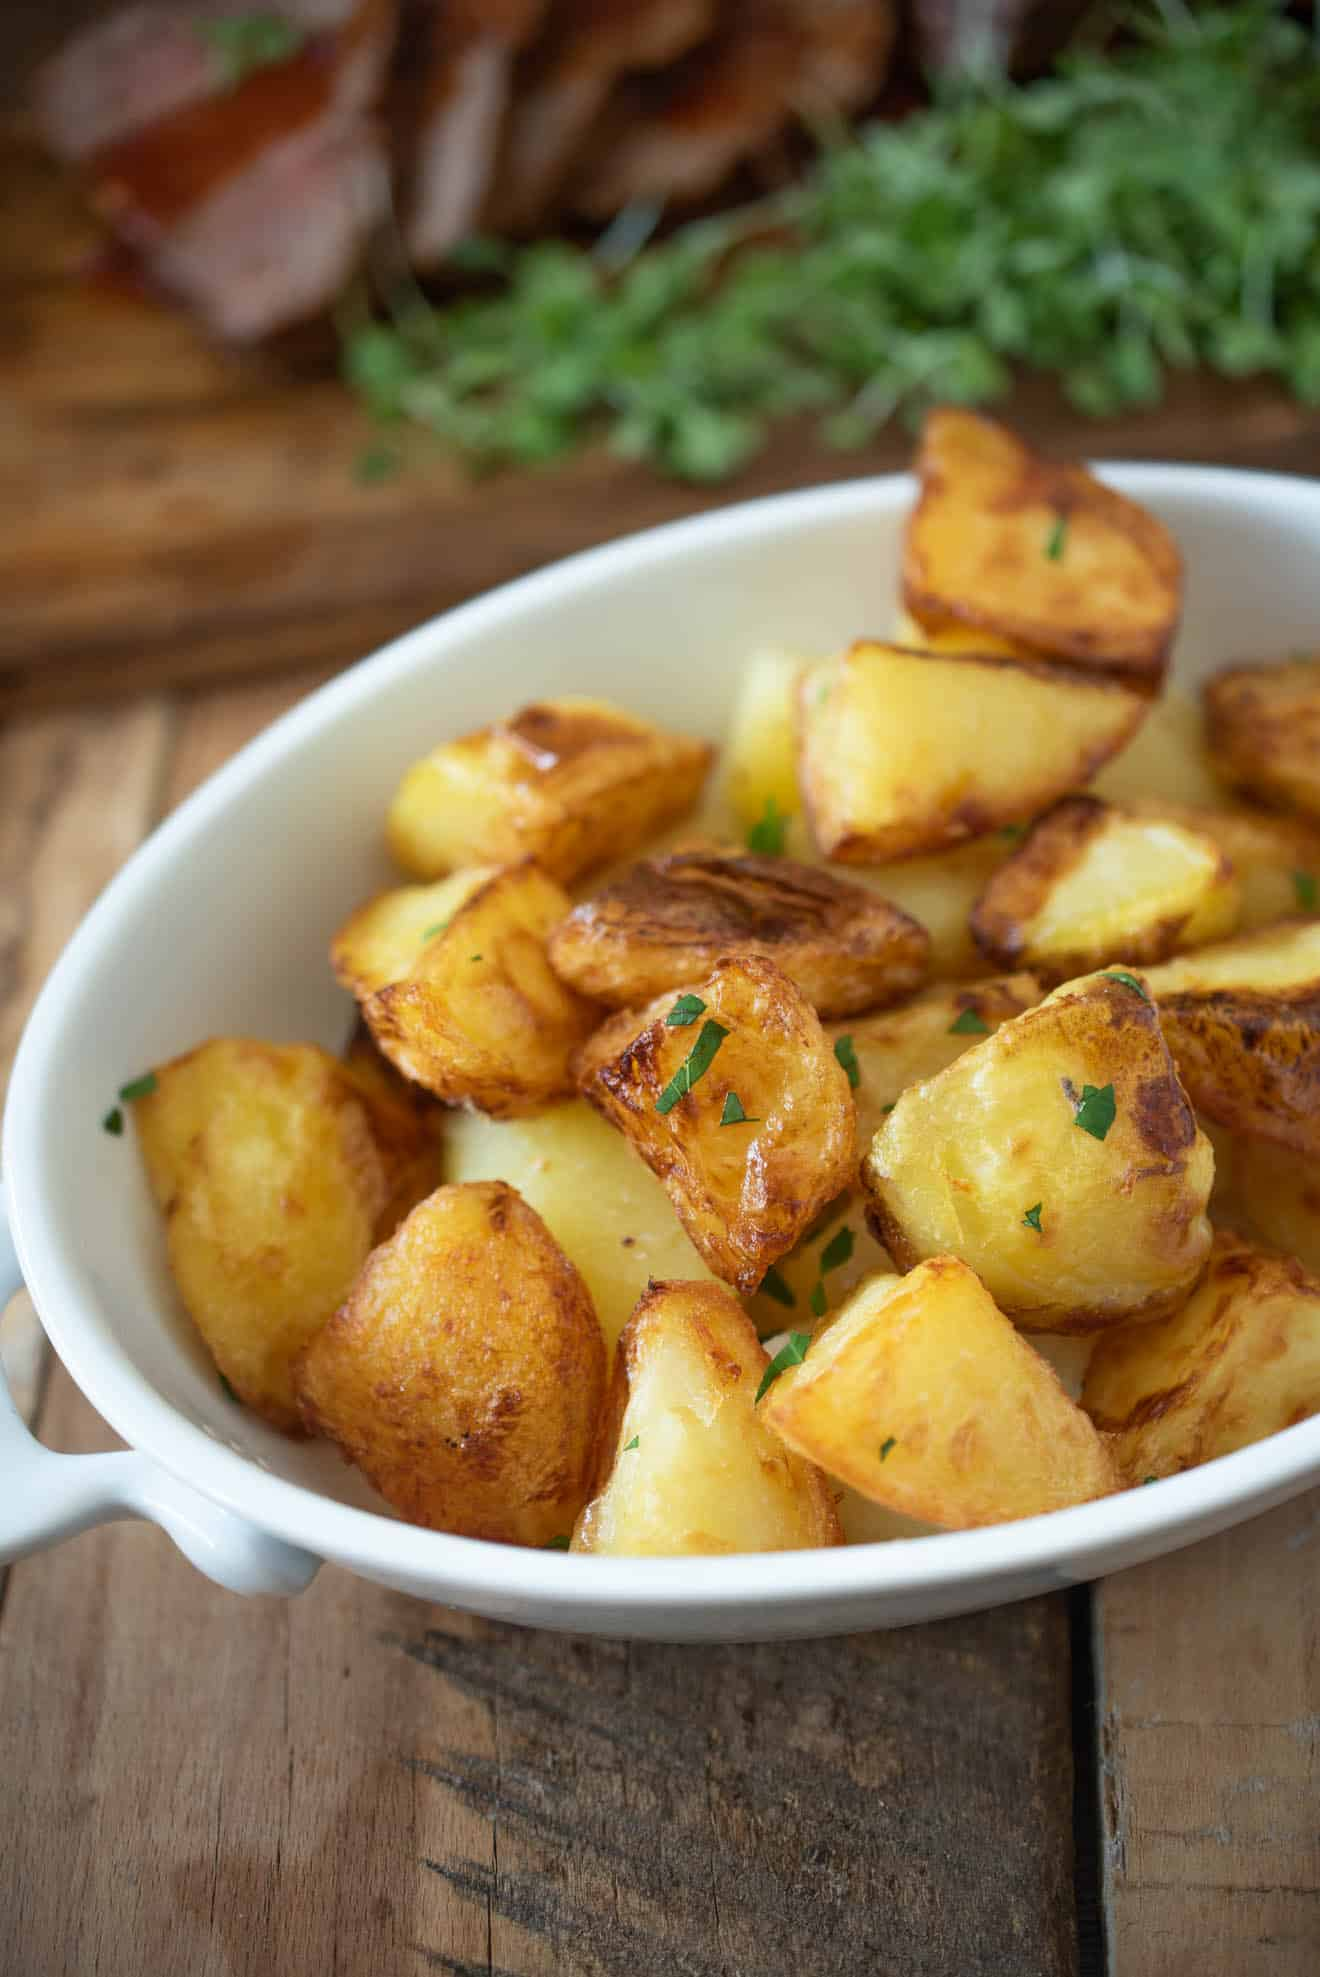 Browned, roasted potatoes in a white oval serving dish